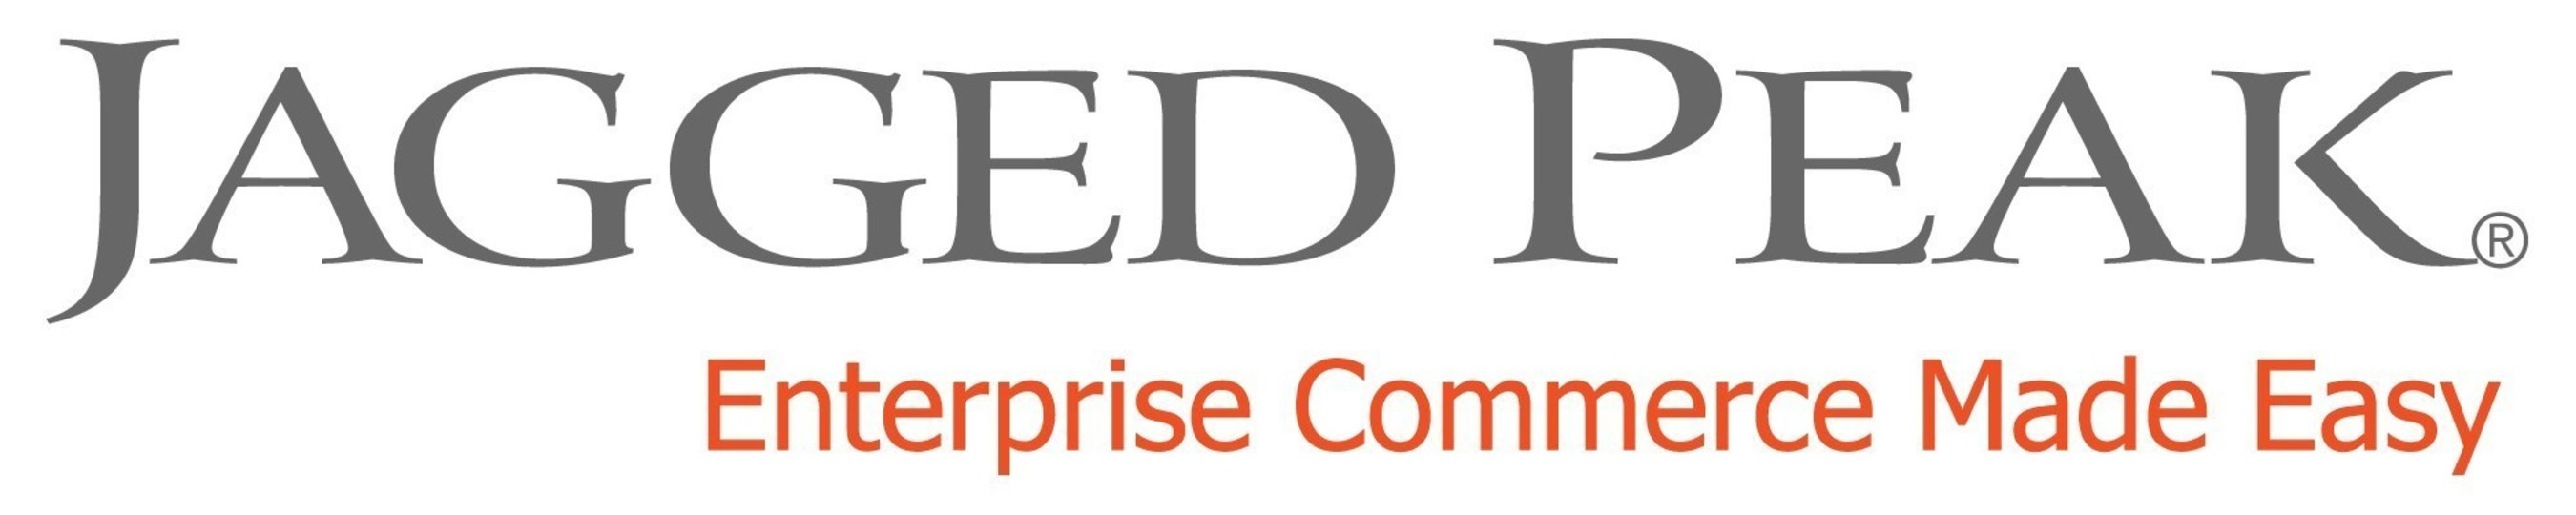 Jagged Peak's EDGE Order Management Solution Now Available in the Oracle Cloud Marketplace